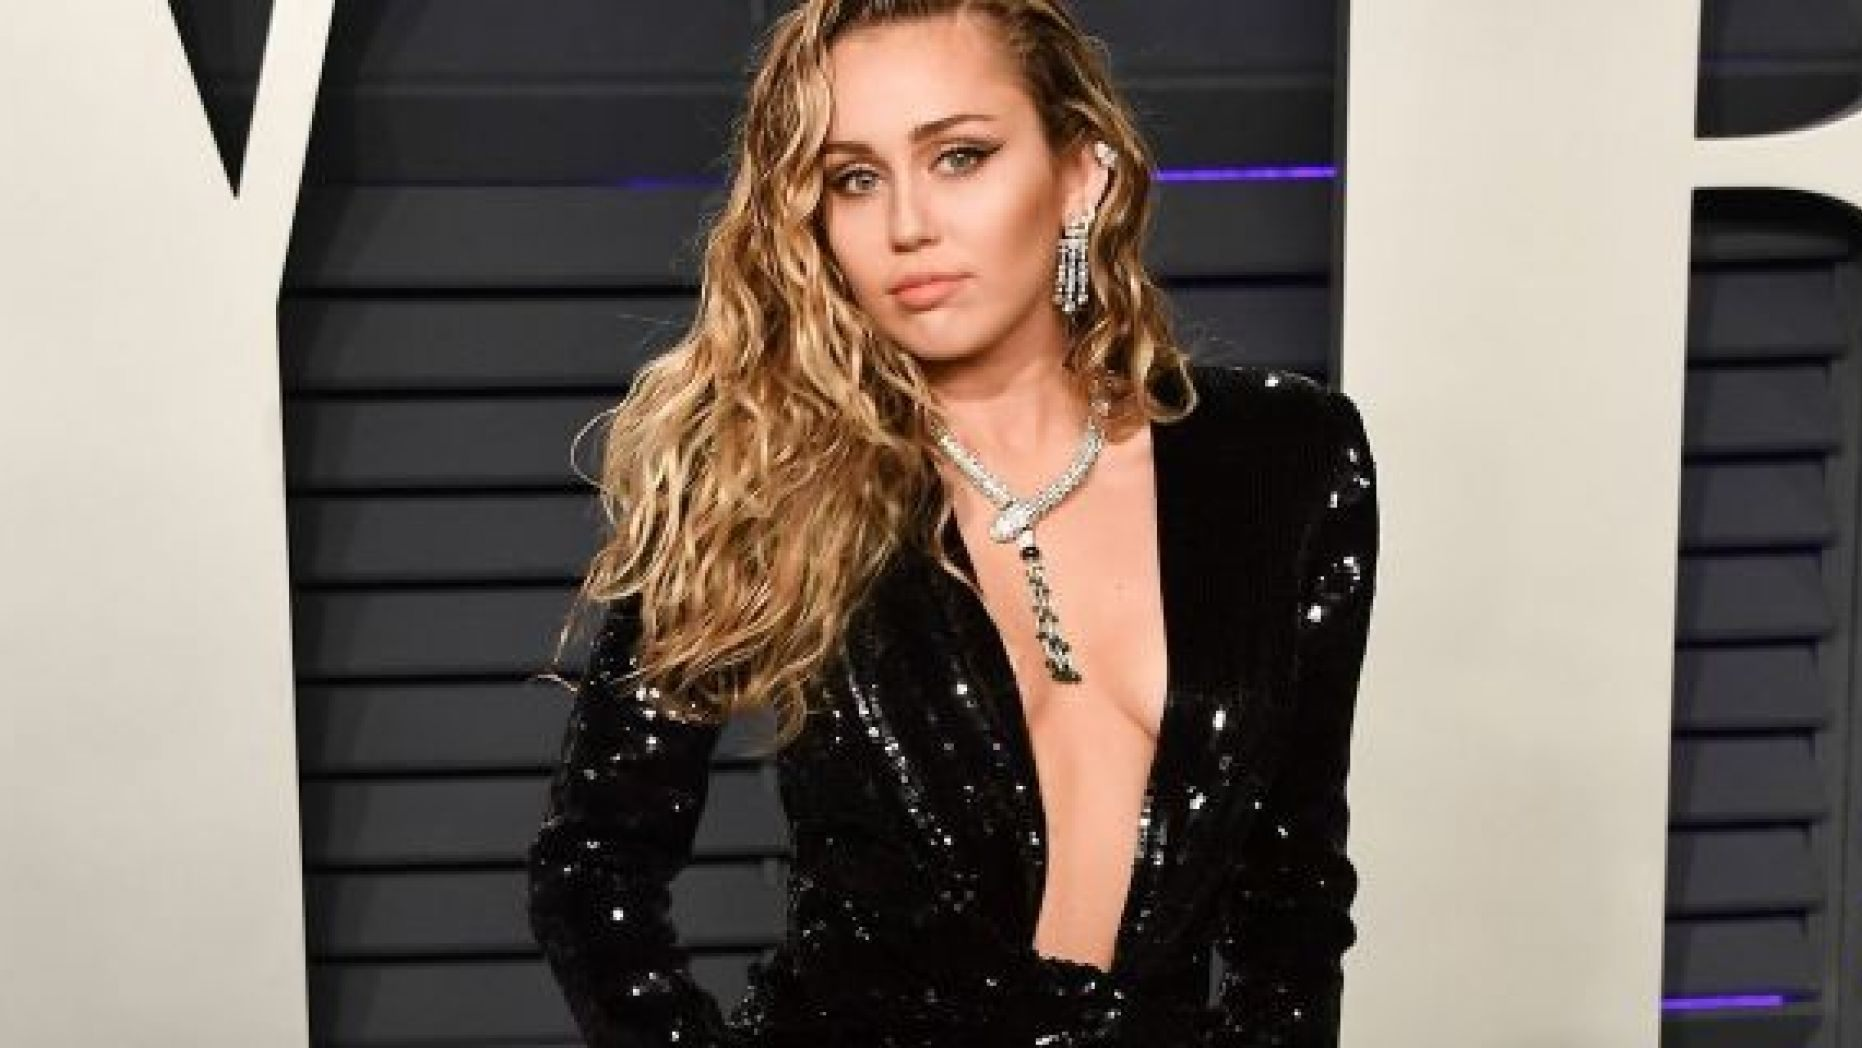 miley-cyrus-is-not-against-hannah-montana-being-rebooted-source-says-jonas-brothers-comeback-convinced-her